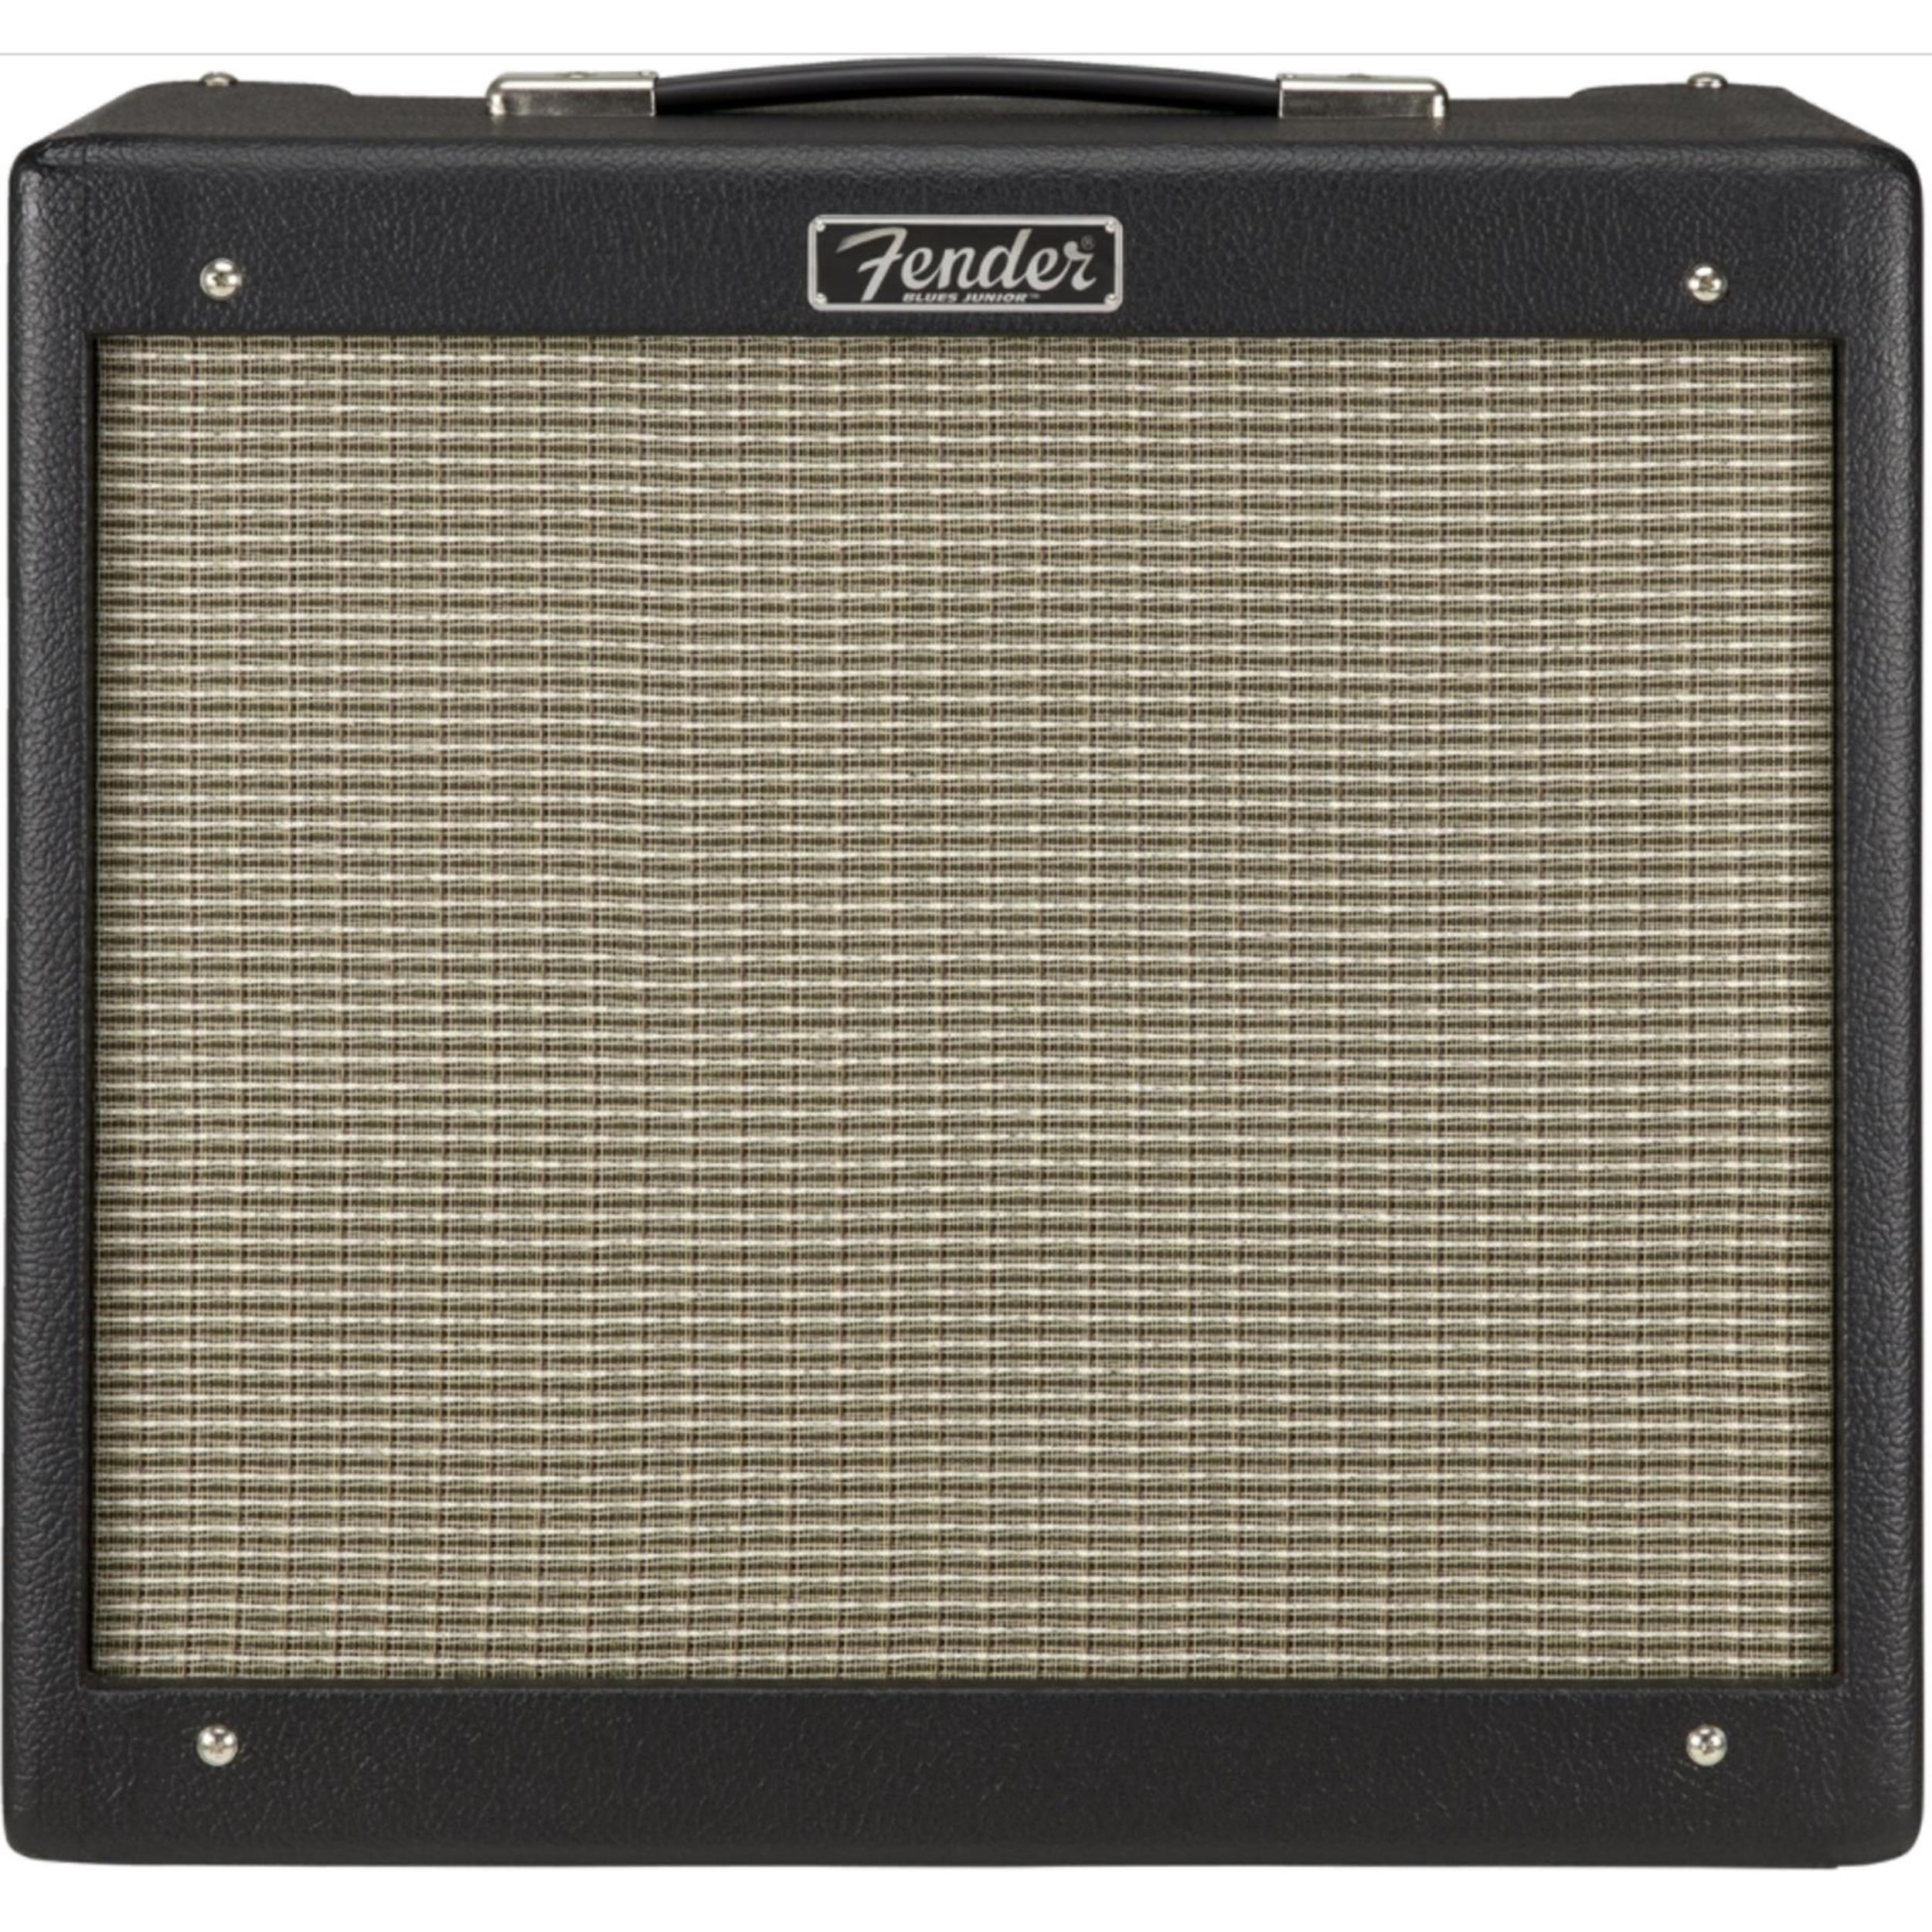 FENDER BLUES JUNIOR IV BLK 230V EU - 2231506000